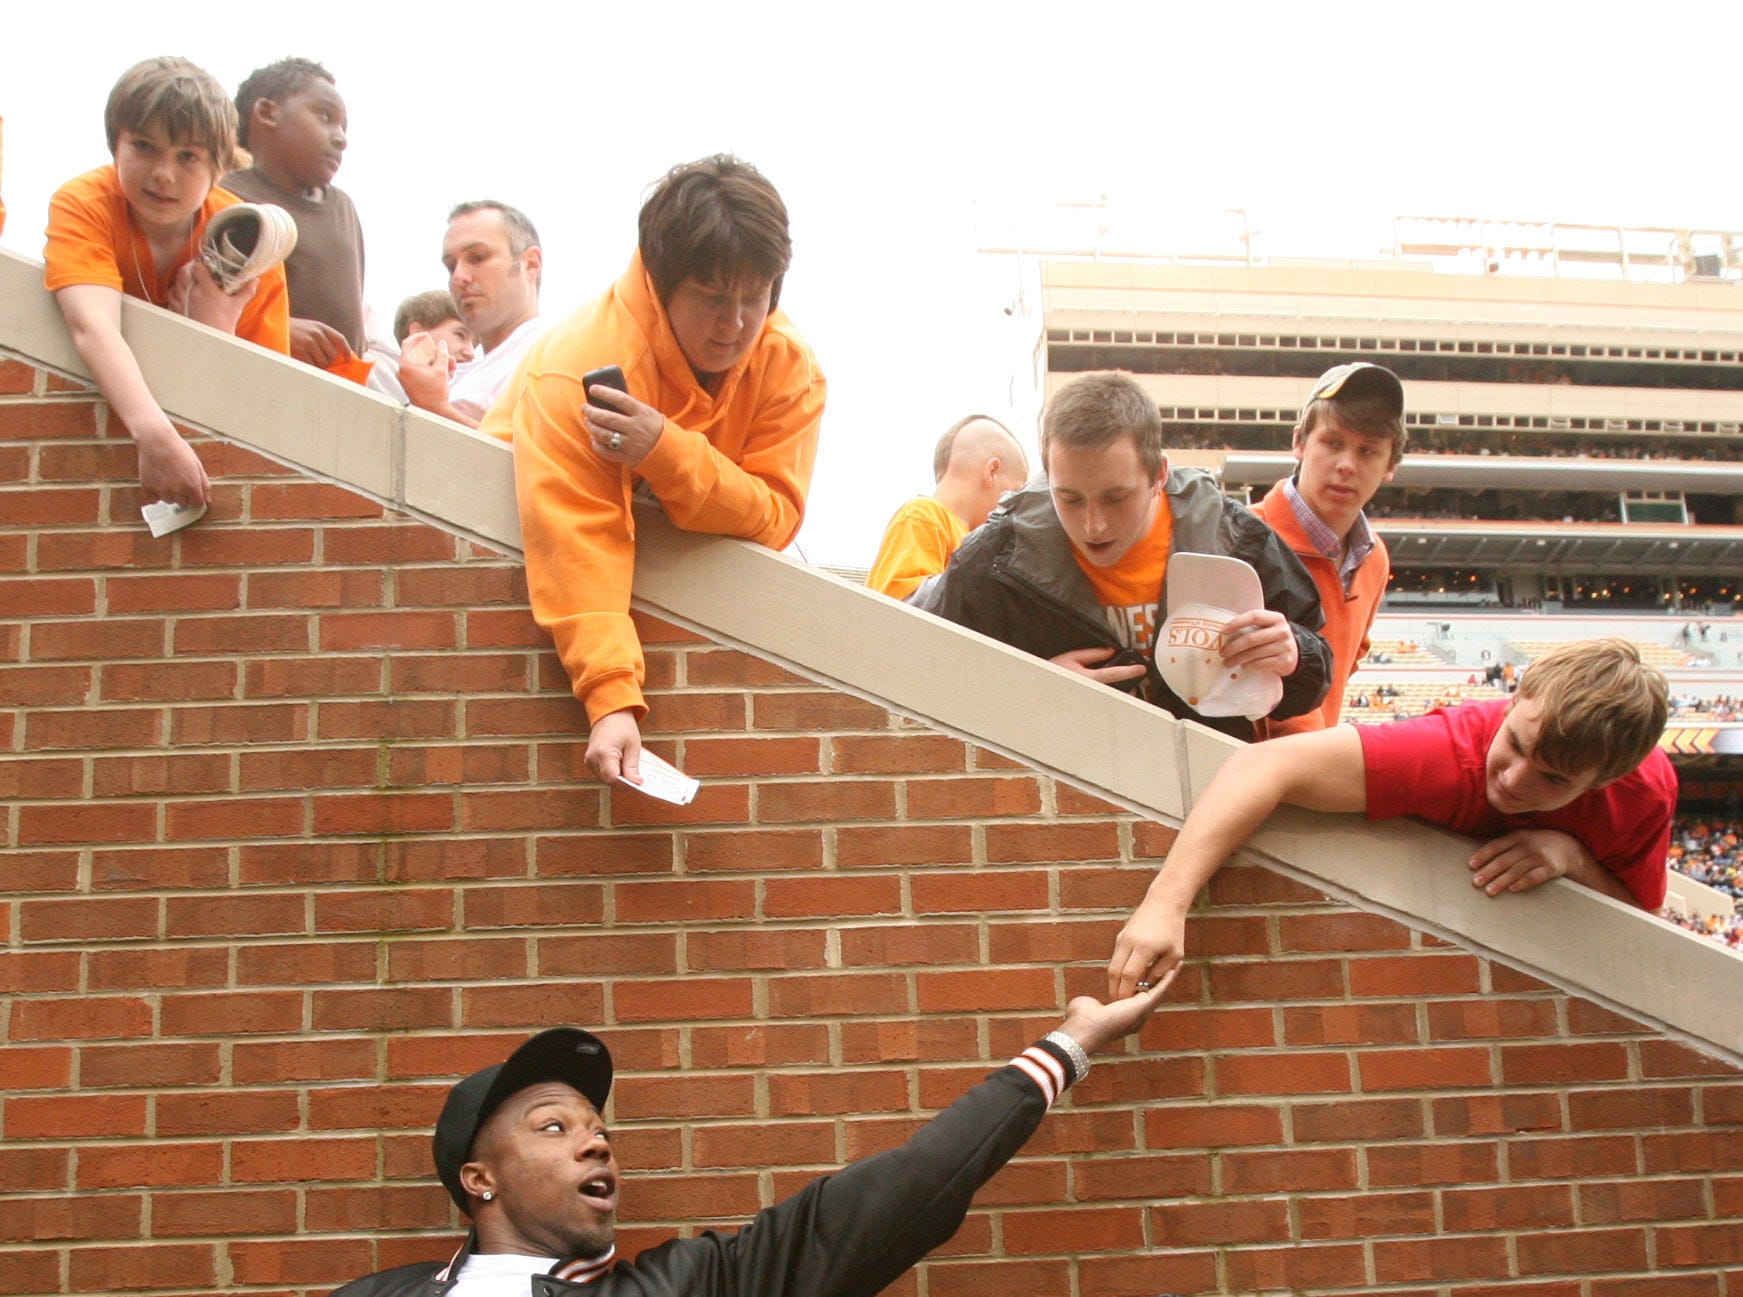 Former Tennessee football player Eric Berry signs autographs for fans during the Orange and White game at Neyland Stadium Saturday, April 16, 2011.  White won the game 24-7 over Orange.